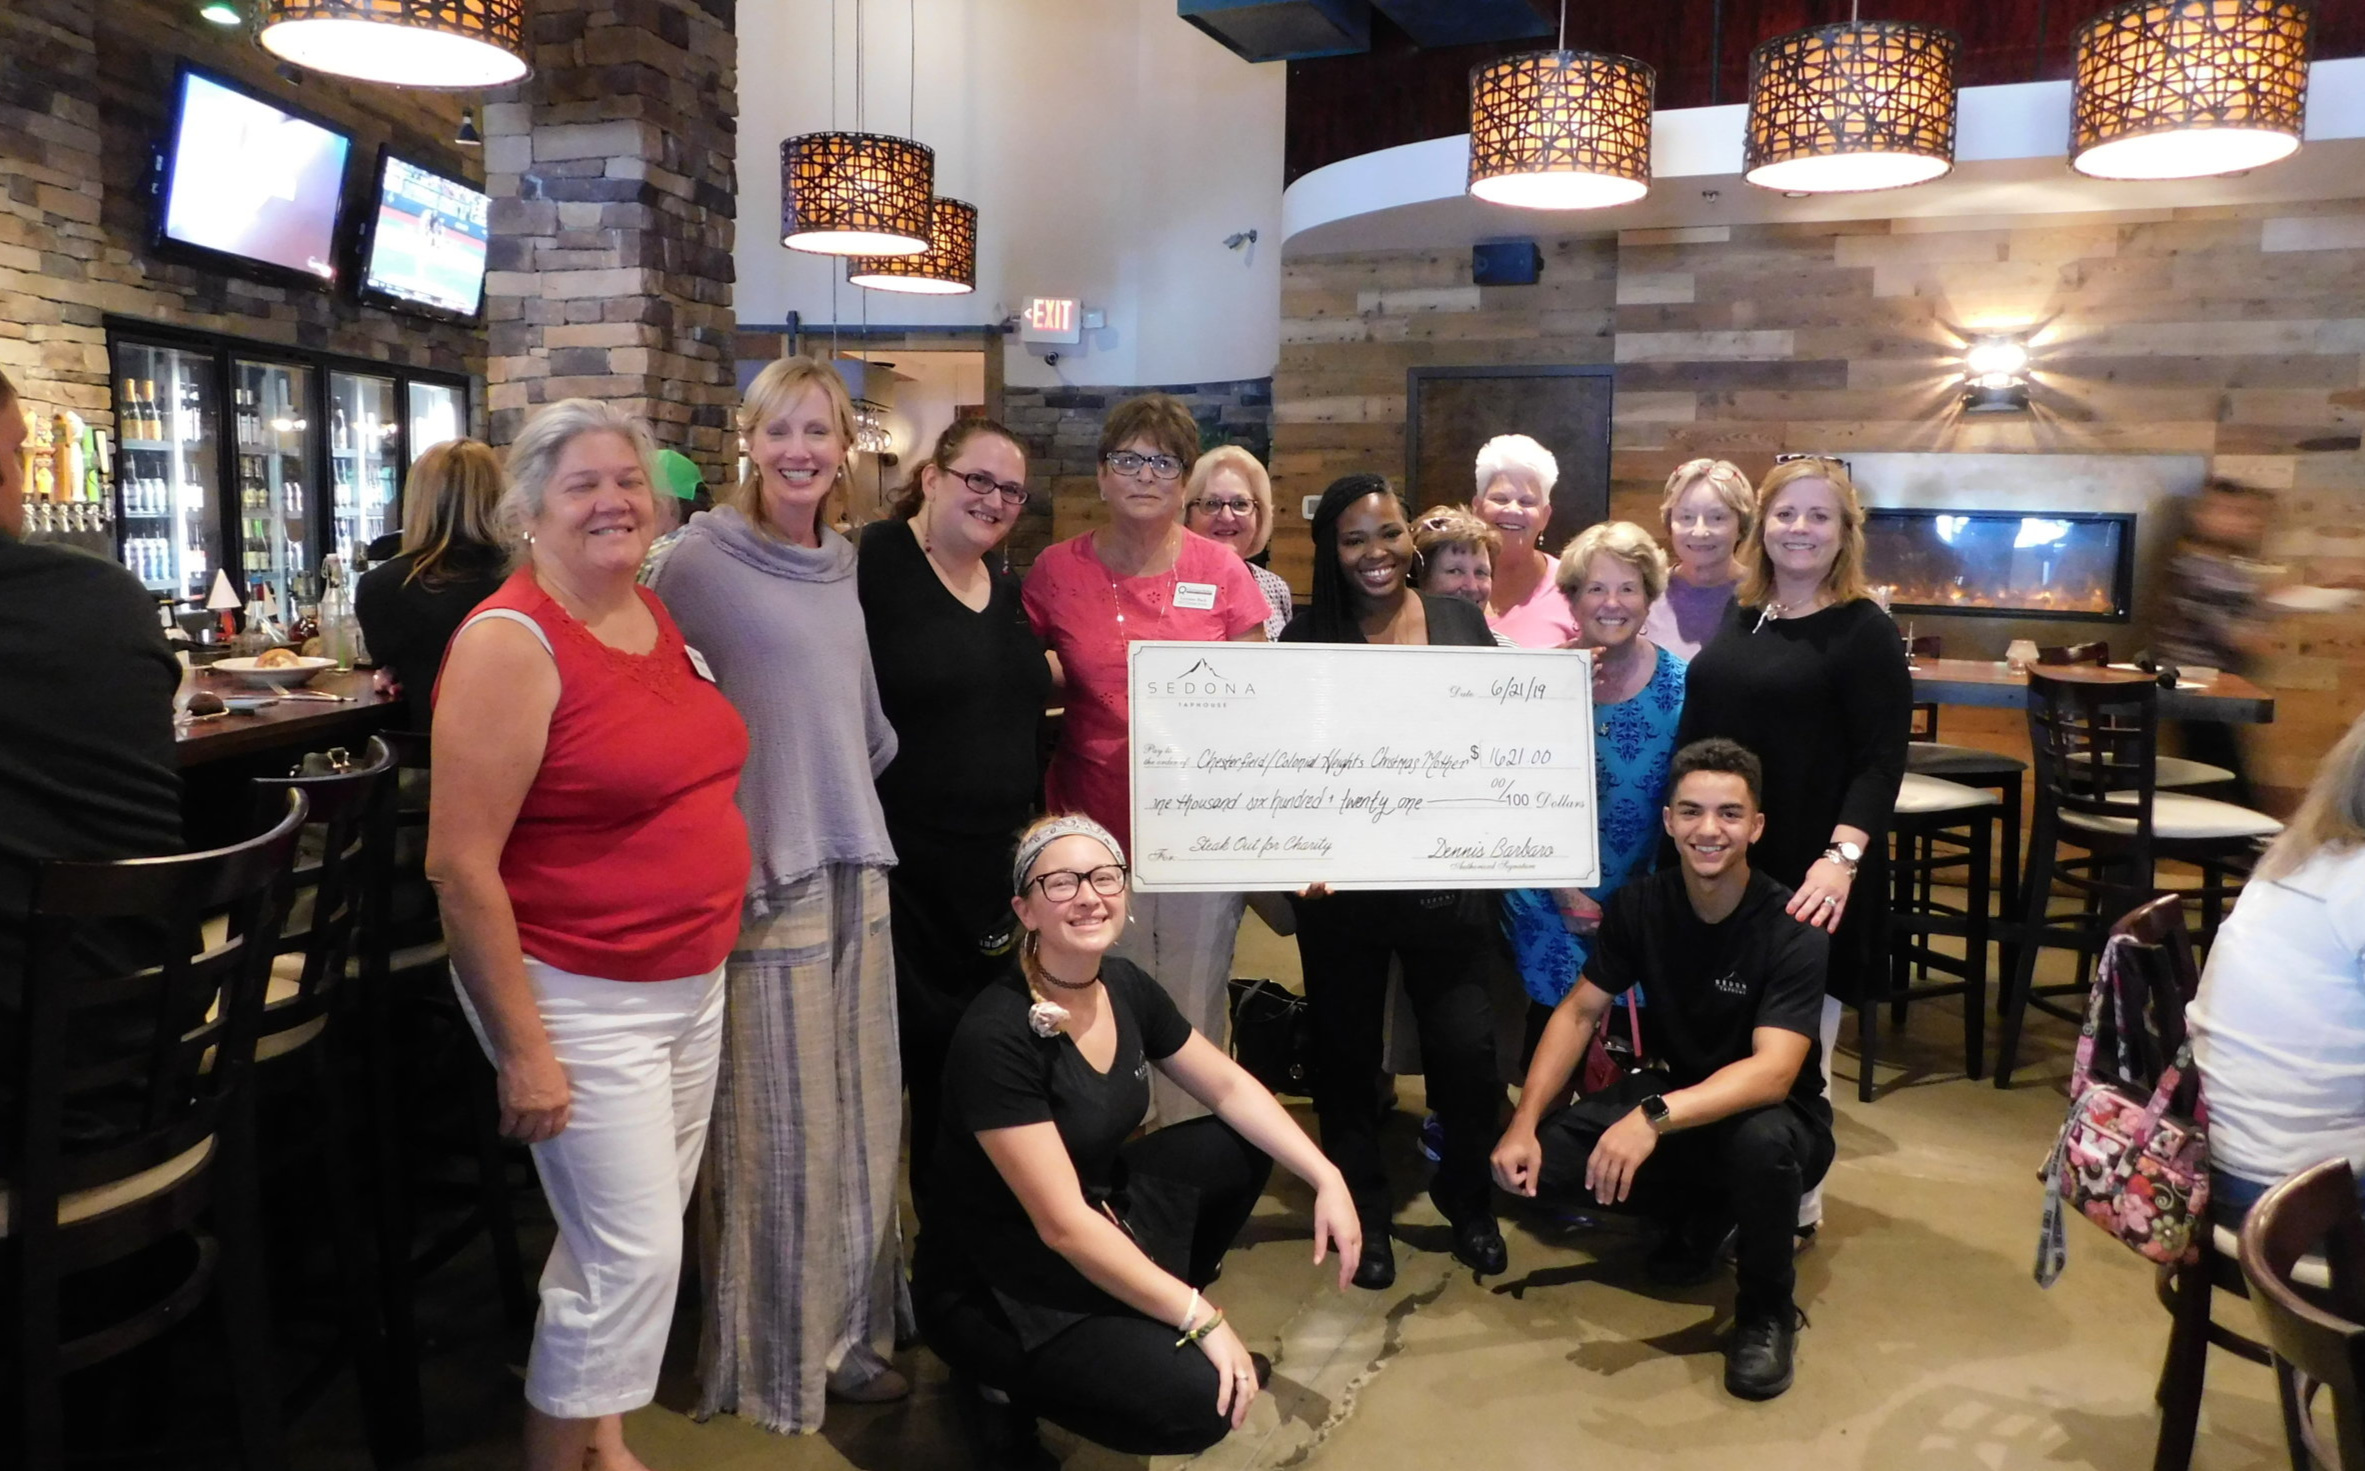 Sedona Steakhouse presenting their donation!